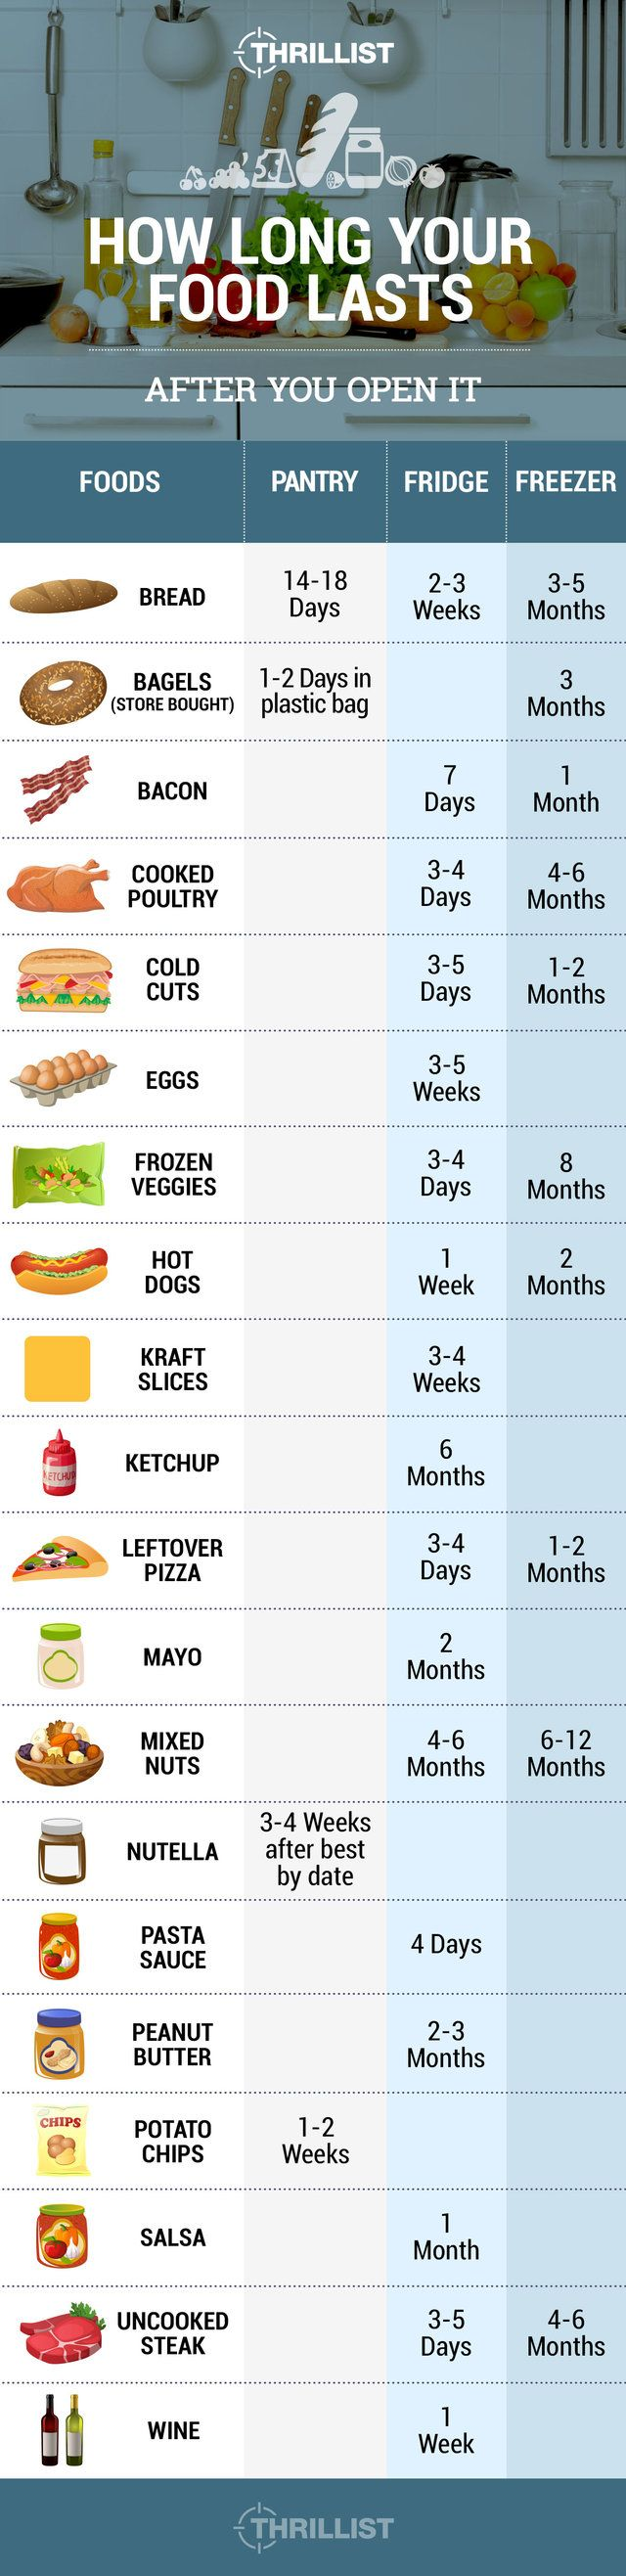 how long foods lasts